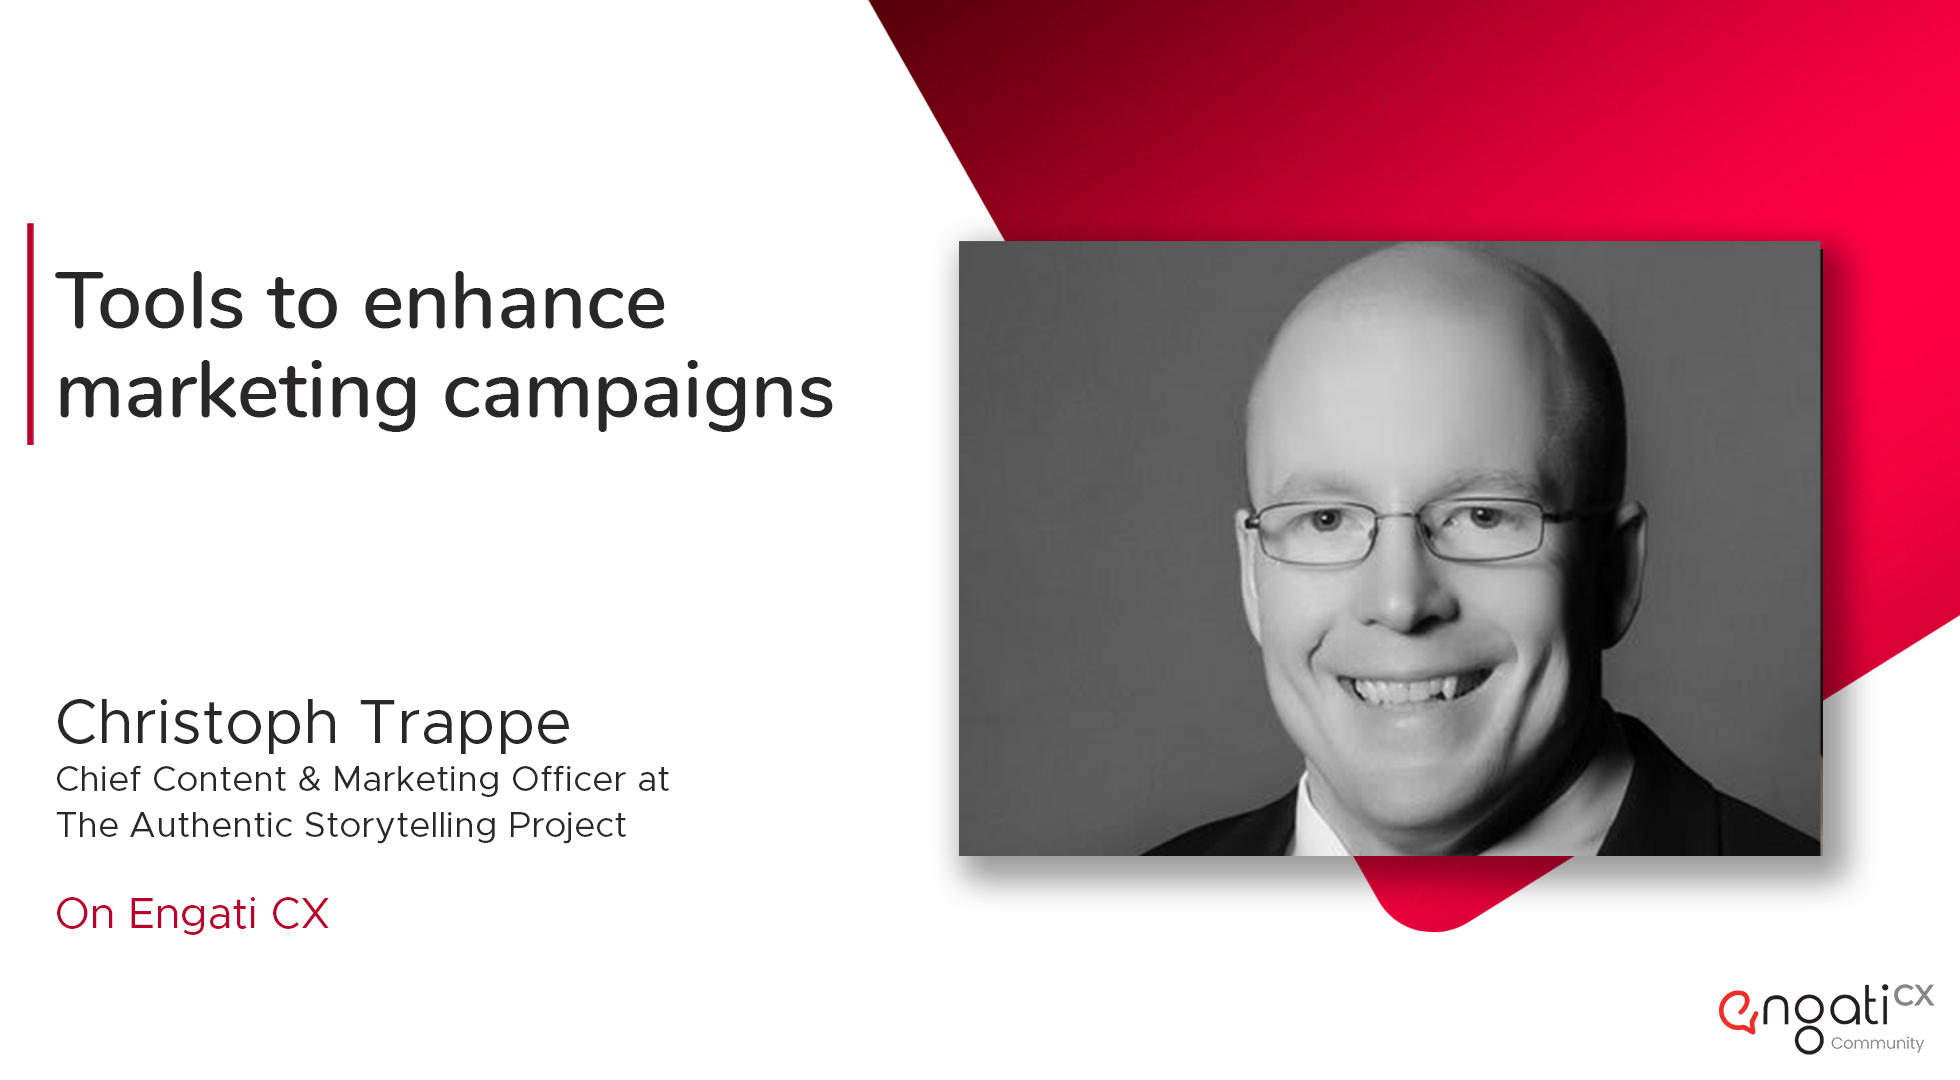 Tools to enhance marketing campaigns | Christoph Trappe | Engati CX